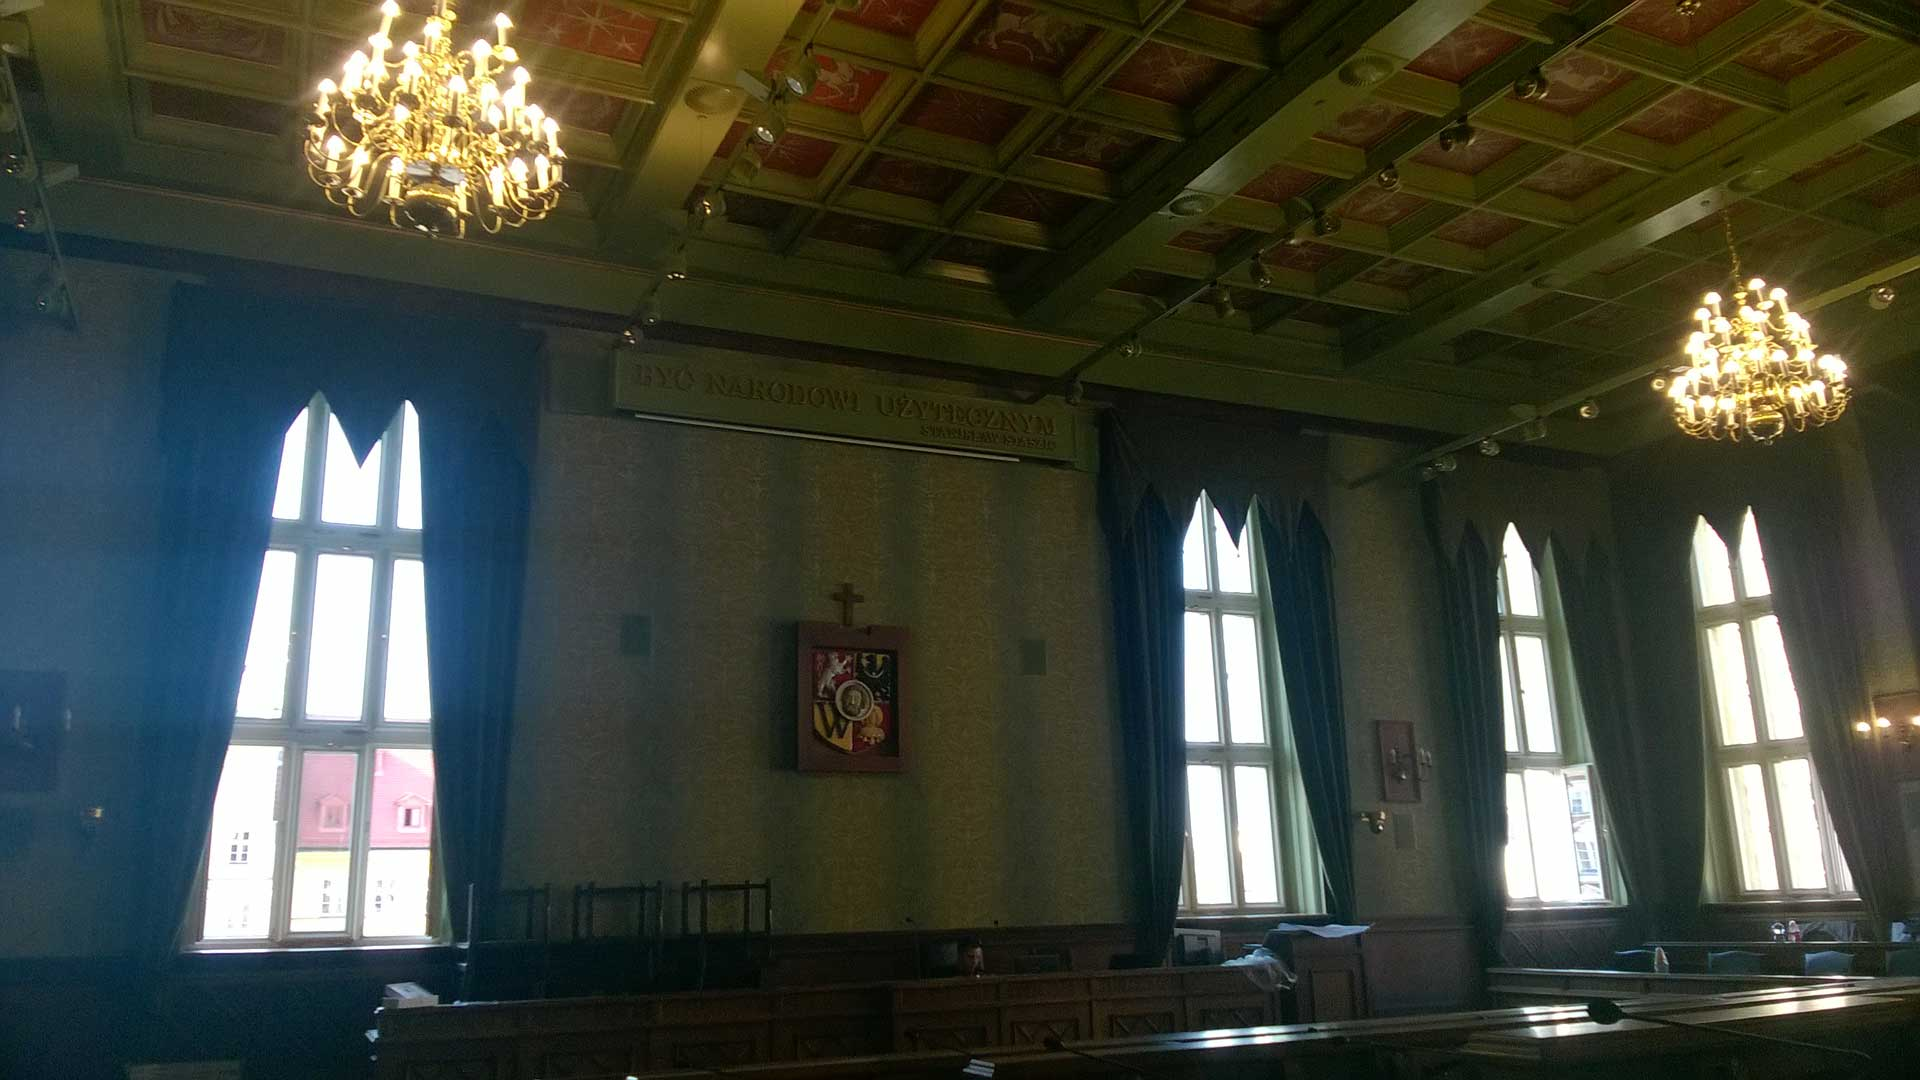 Renovation of the Session Hall of the City Hall in Wroclaw